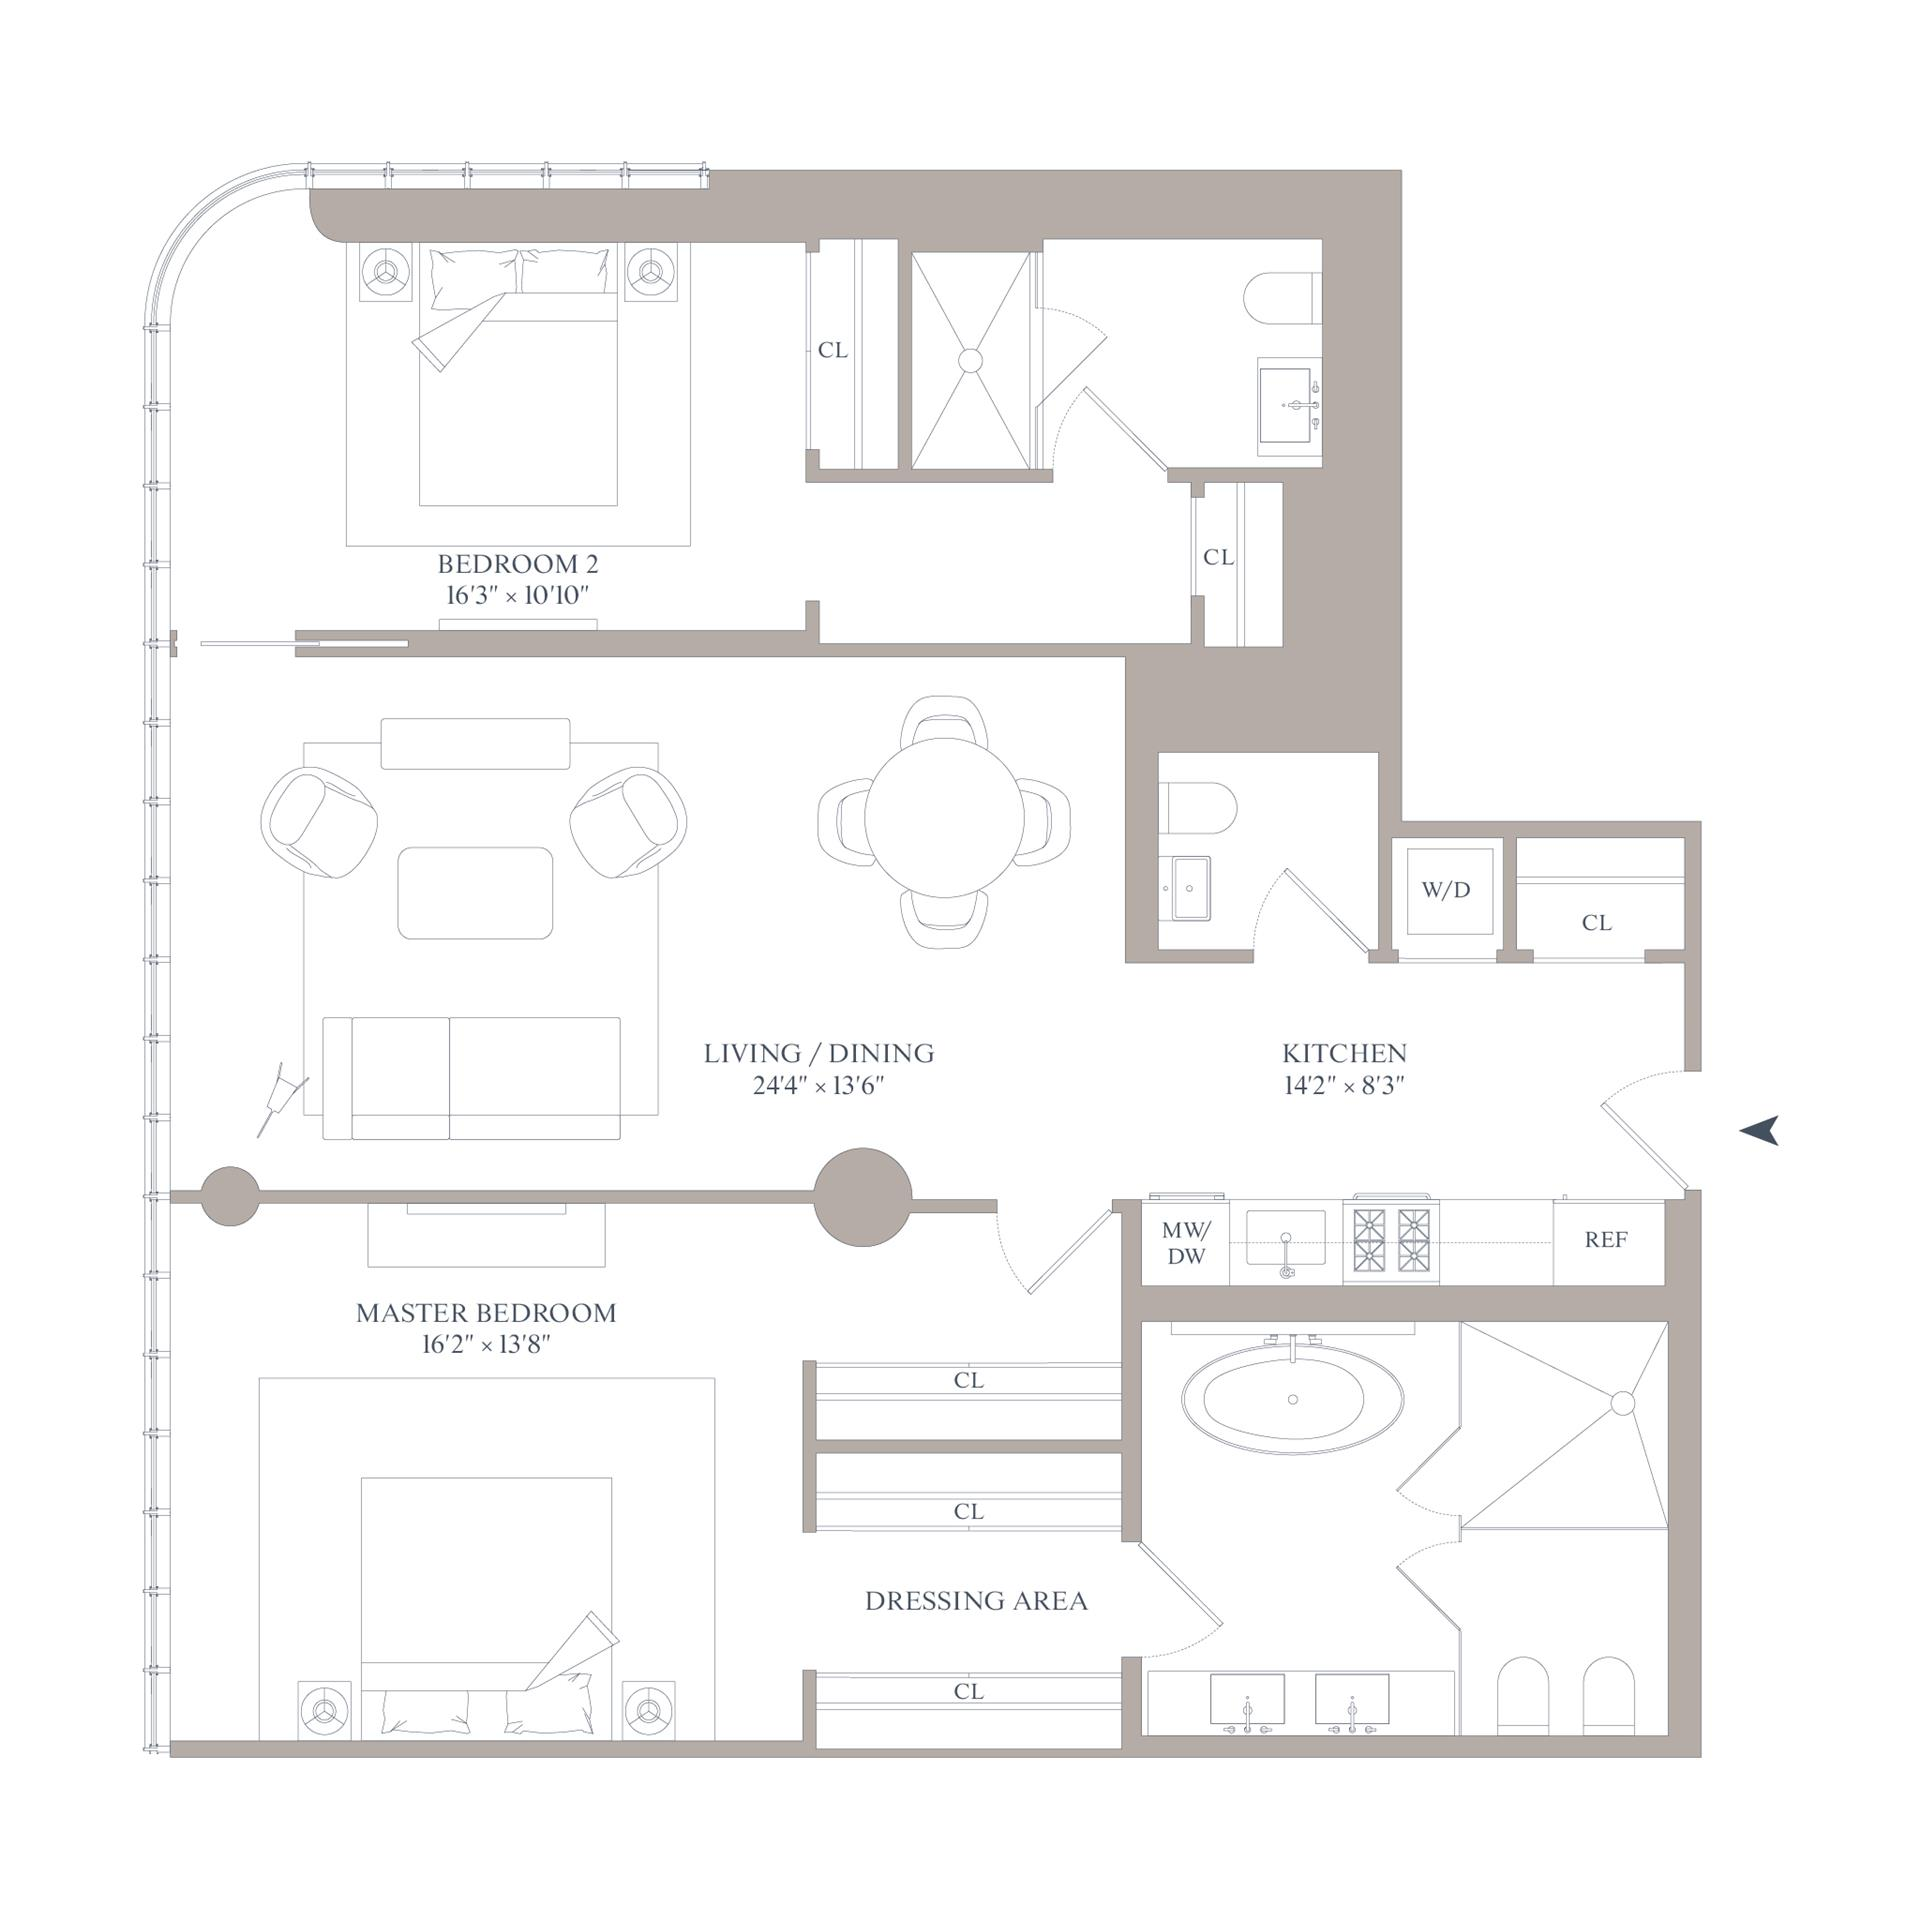 Floor plan of 565 Broome Street, S11A - SoHo - Nolita, New York